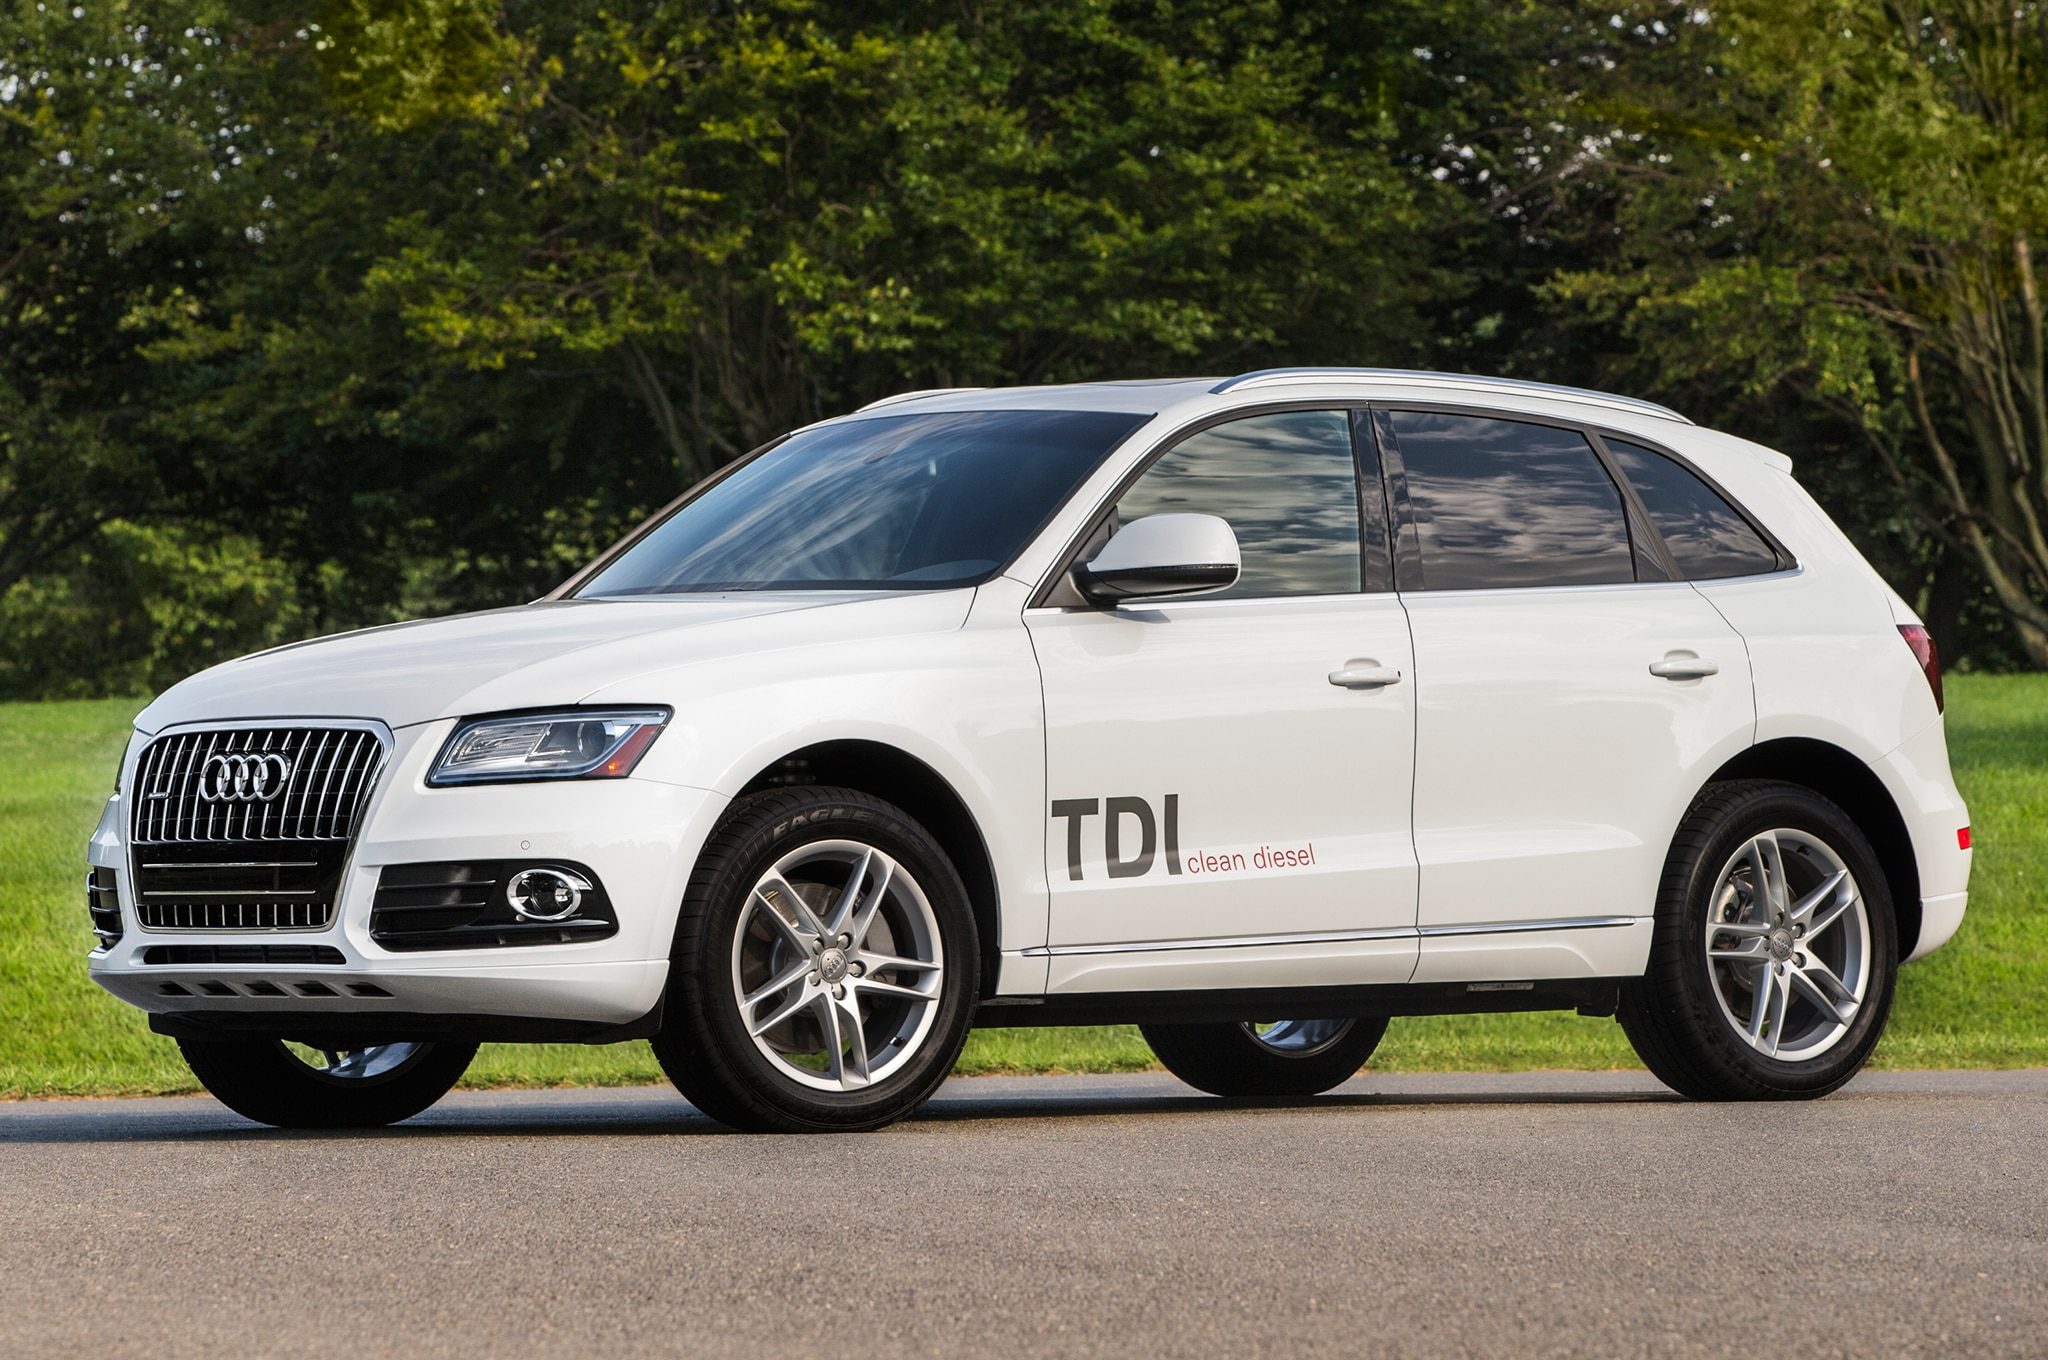 We Hear Audi To Buy Back Vehicles With Liter TDI In - Audi to buy